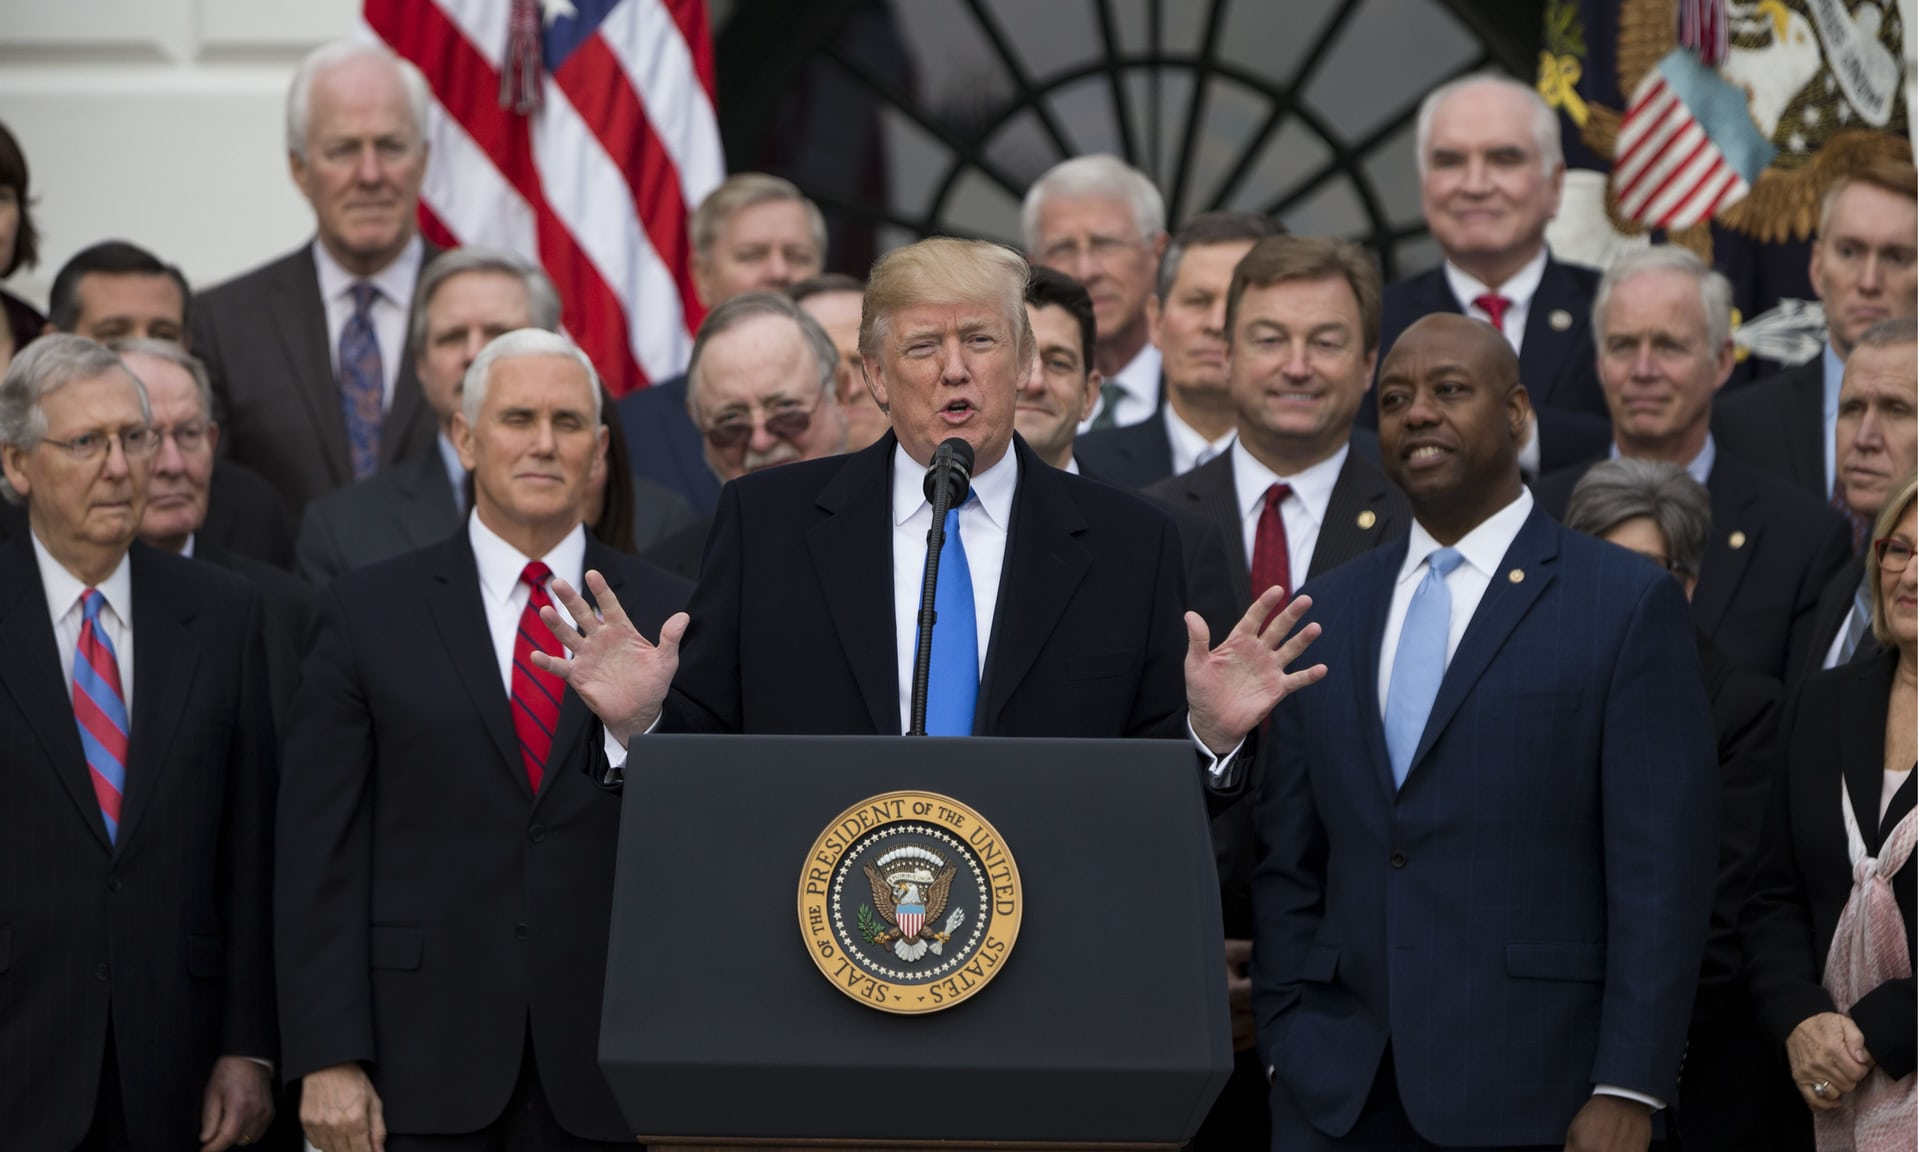 Donald Trump speaks on the south lawn of the White House after Congress passed the Republican sponsored the 'Tax Cuts and Jobs Act' on 20 December 2017. Photograph: REX/Shutterstock